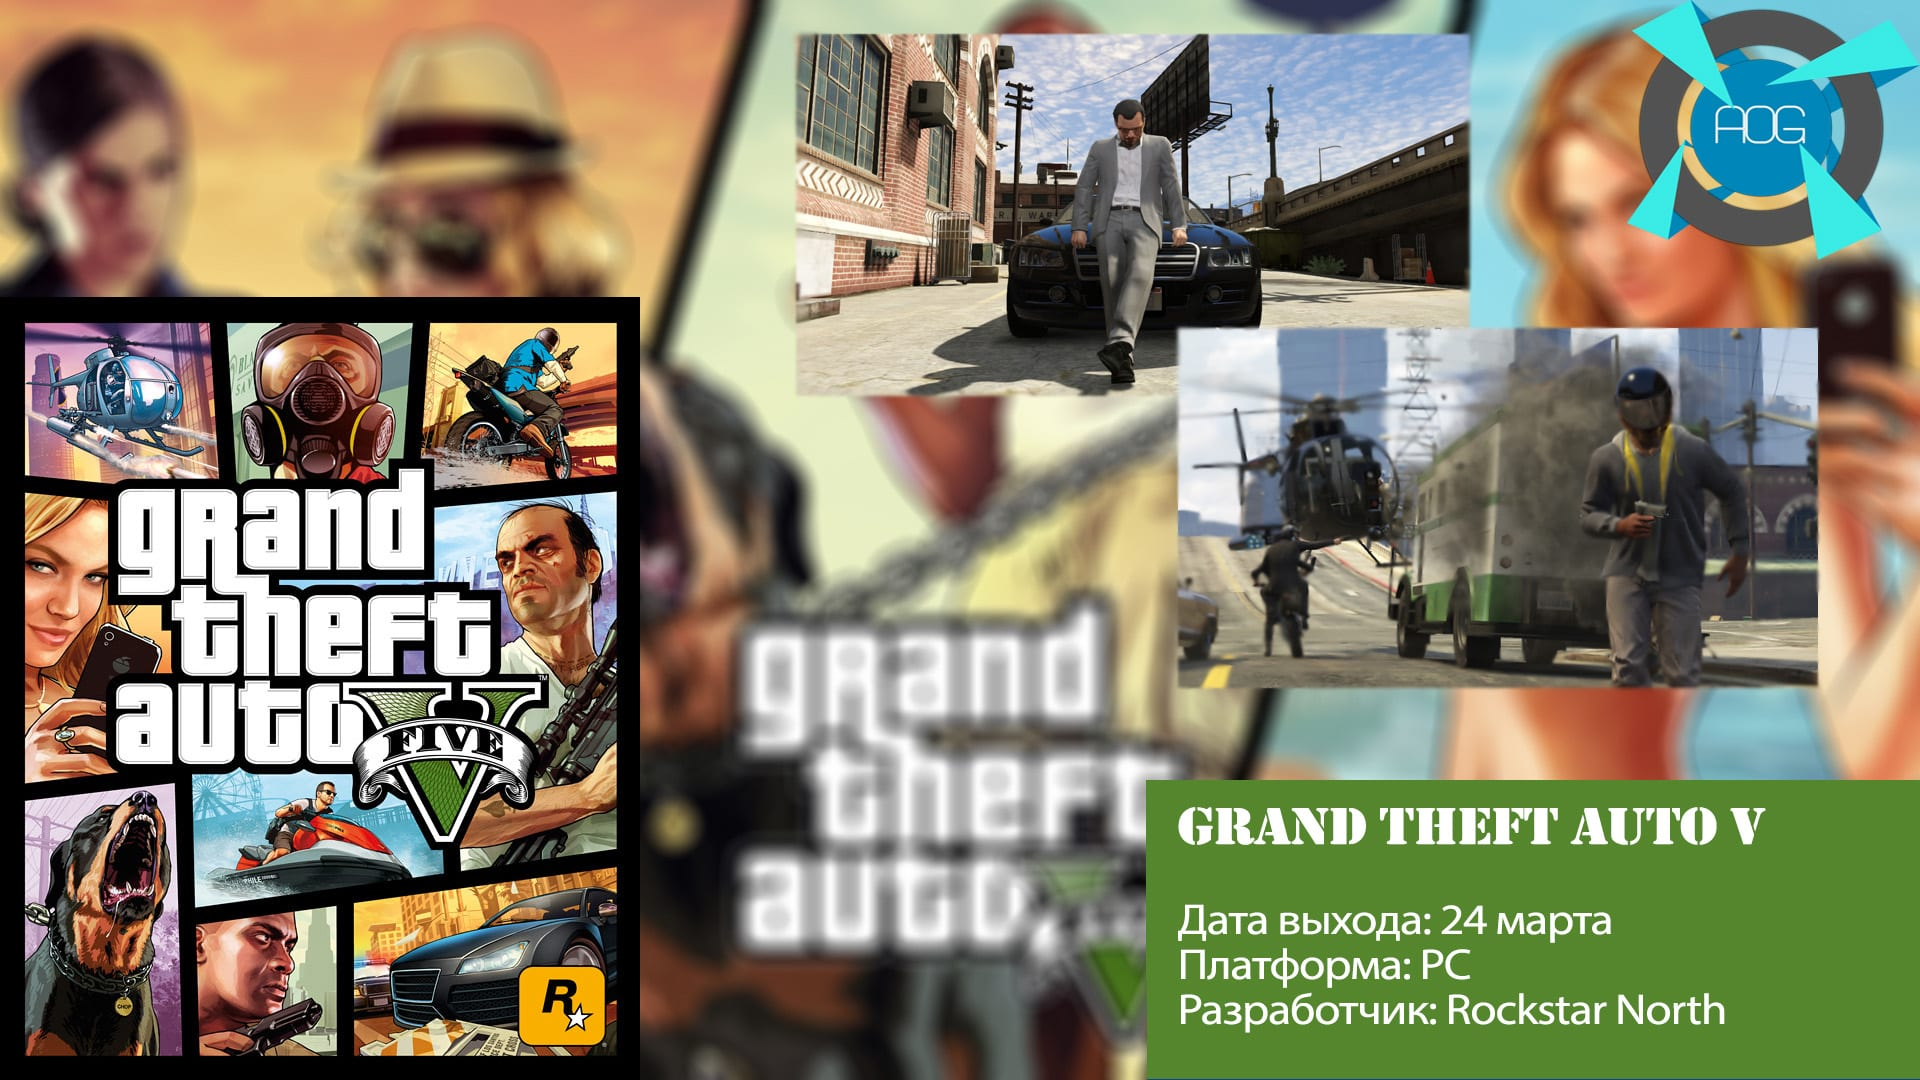 gtav-graphik-relizov-2015-march